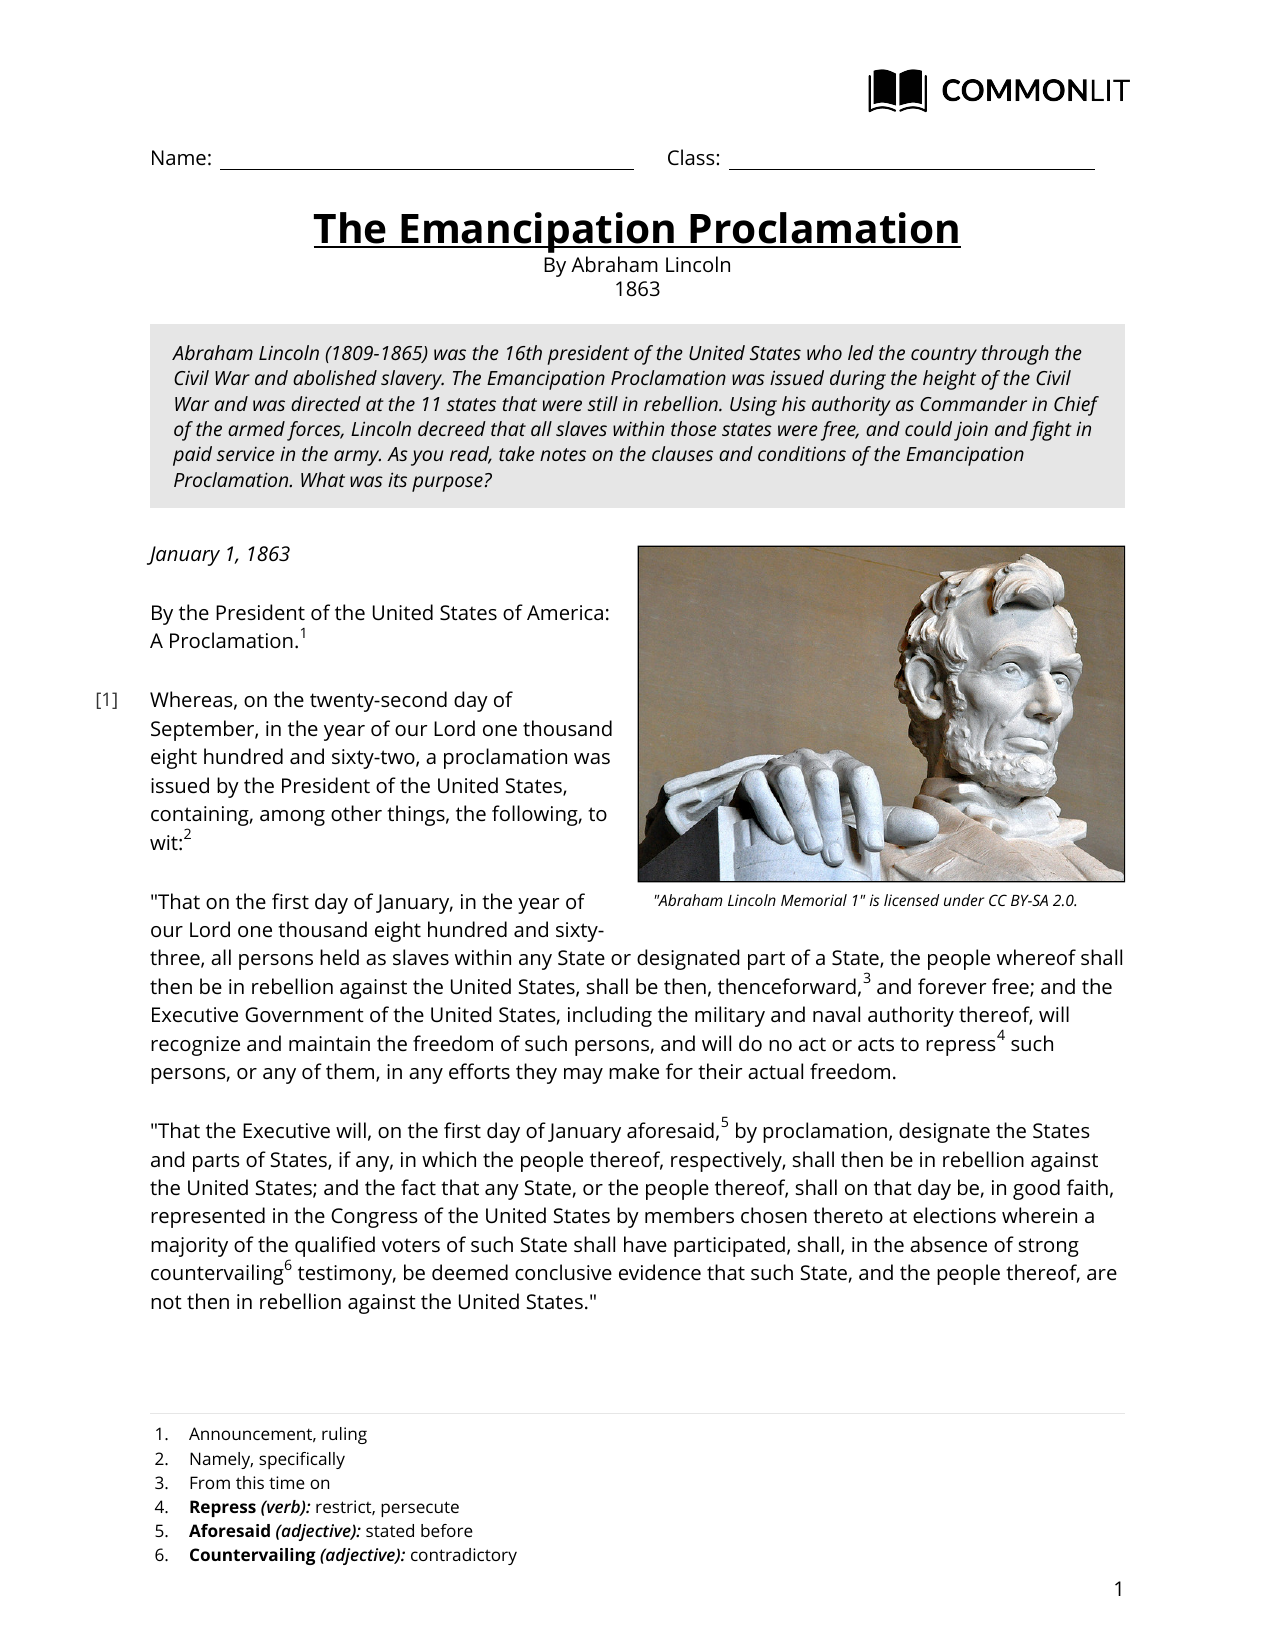 worksheet Emancipation Proclamation Worksheet commonlit the emancipation proclamation